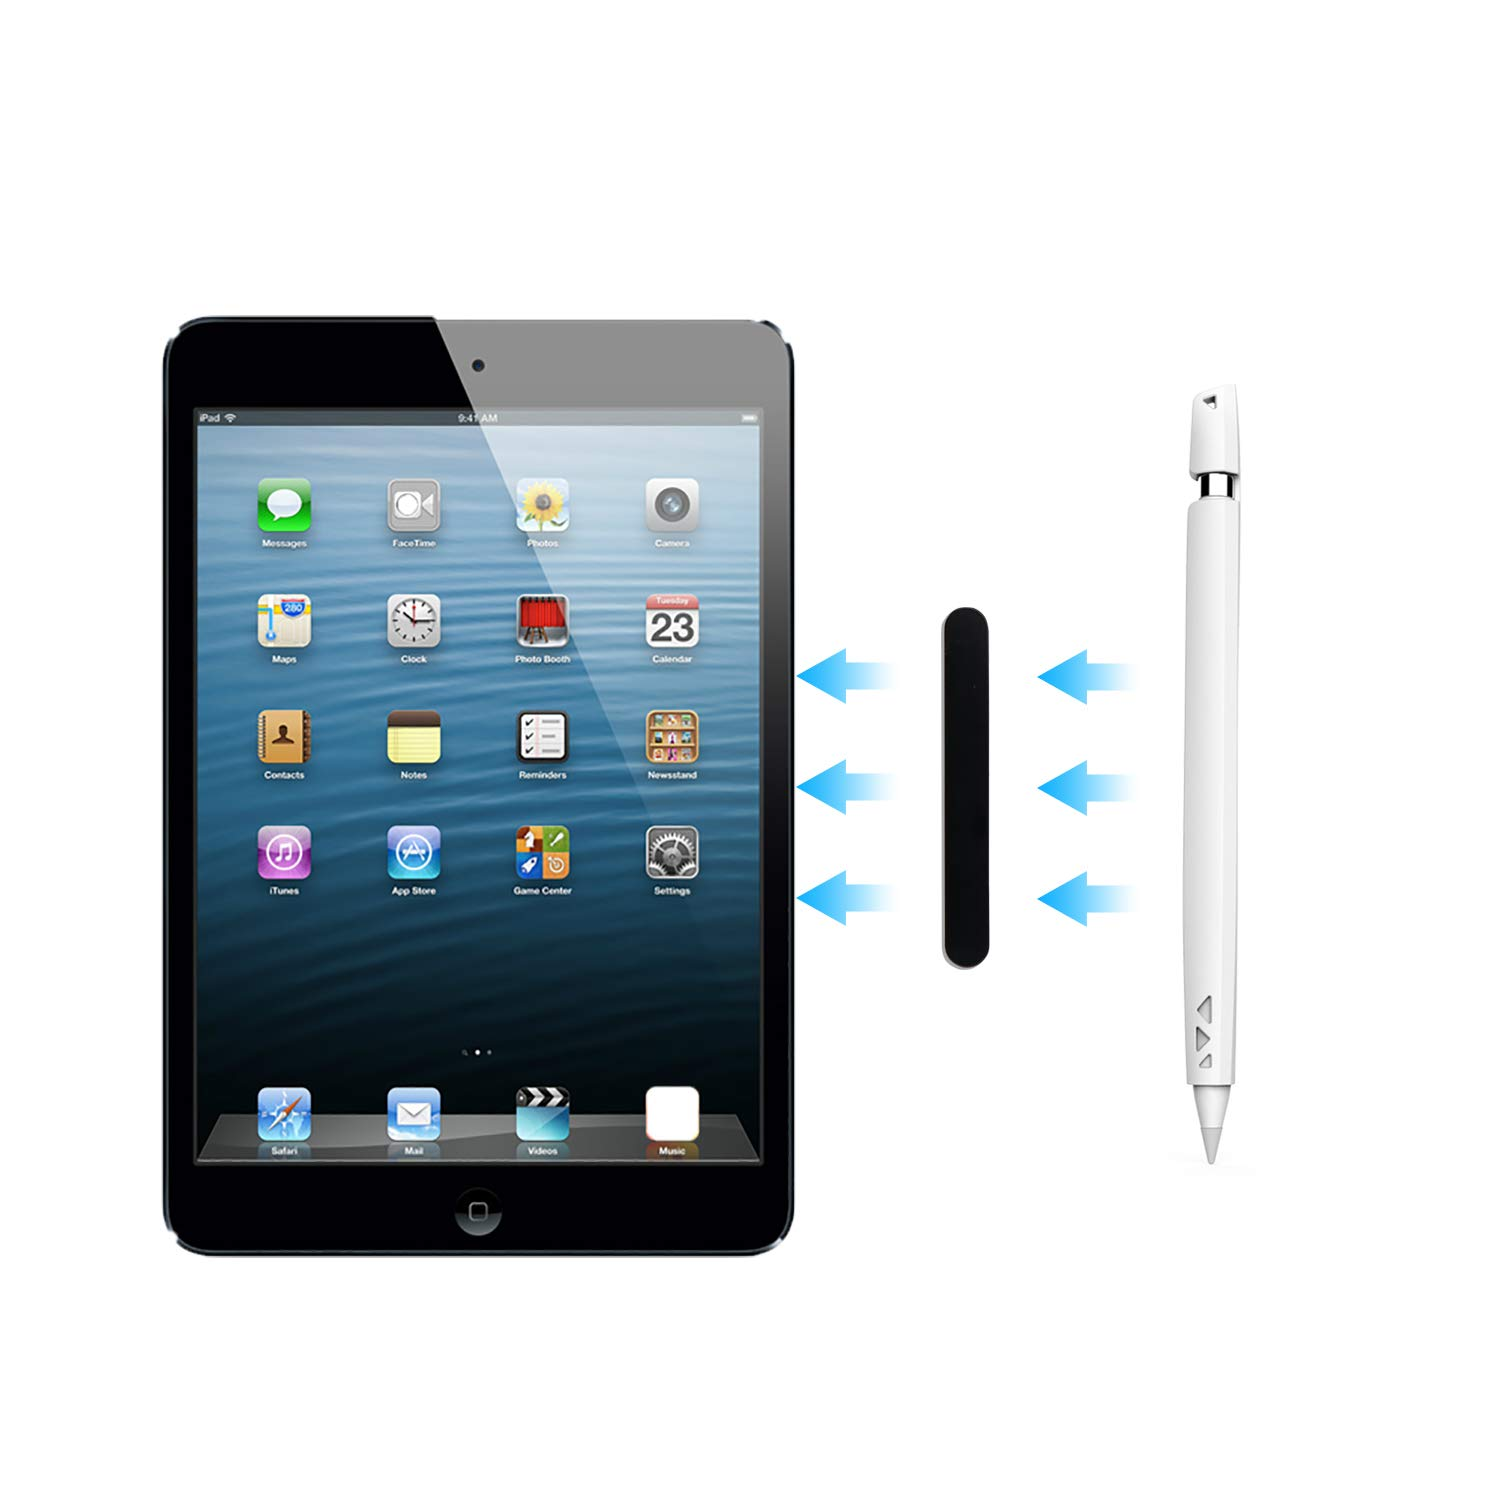 Magnetic Sleeve for Apple Pencil,Silicone Case Holder with Lip,Protective Shell Cover Grip with Cap for iPad Pro Pencil,Protects Apple Pencil from Shock Damage, Scratches, Dirty and Slips, White